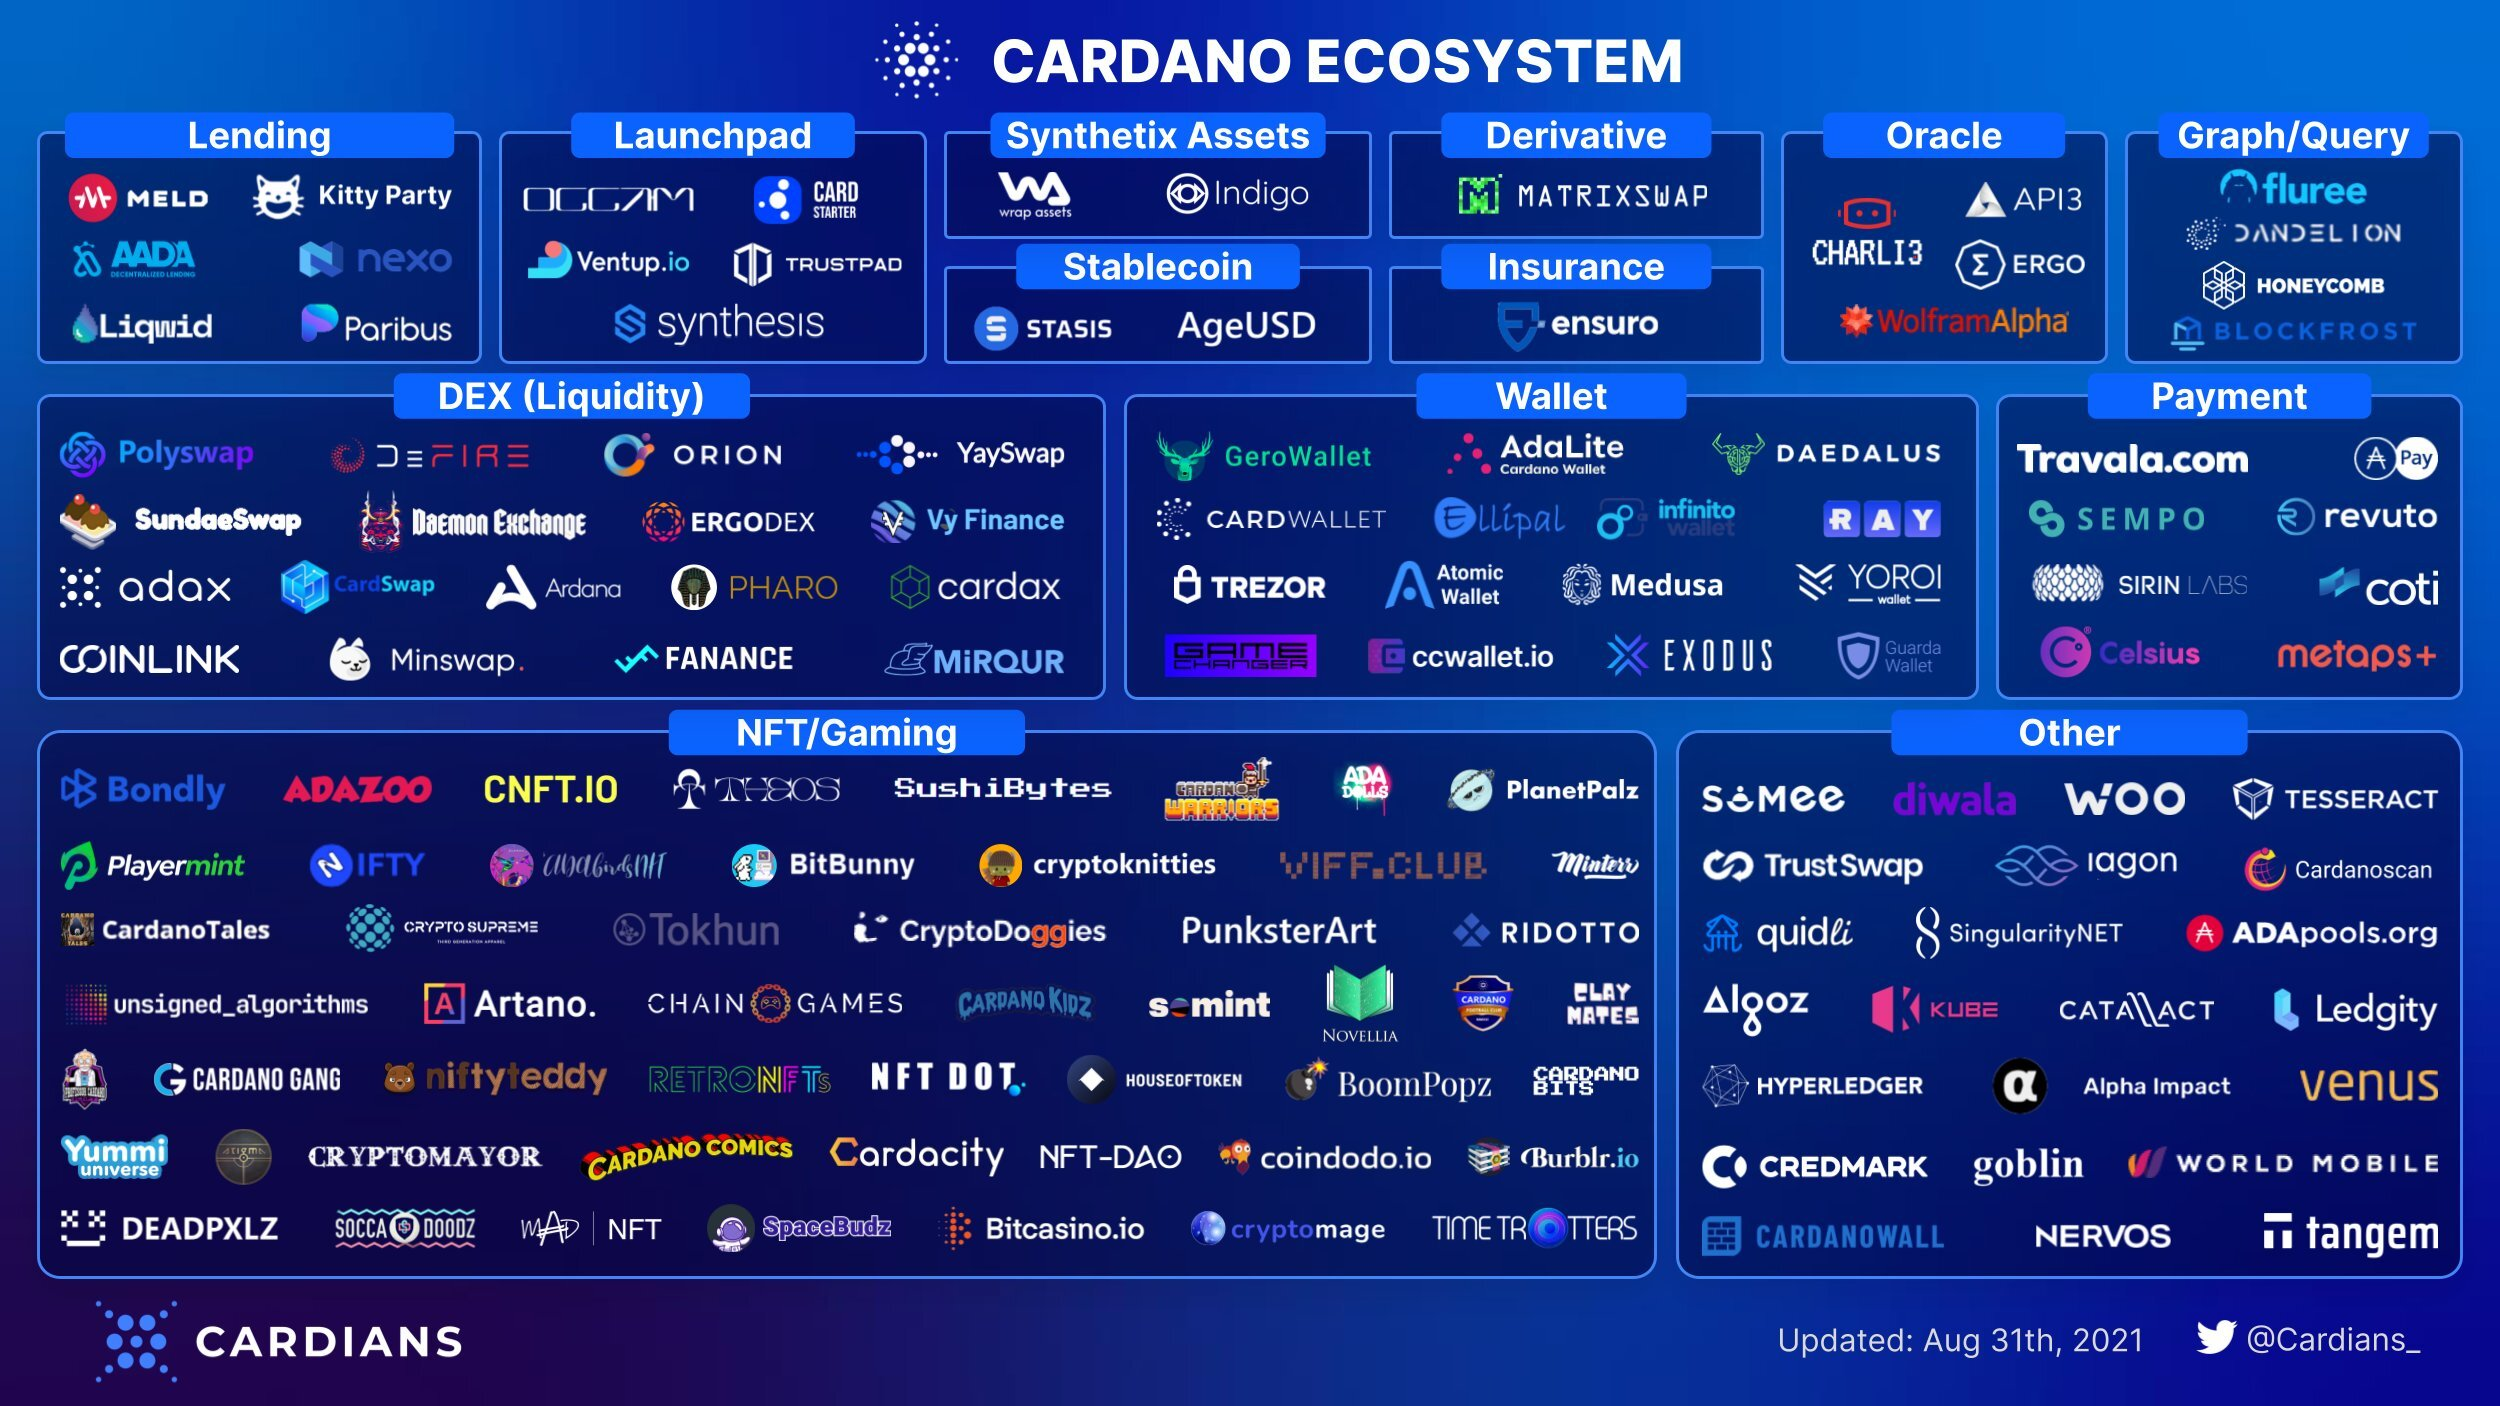 Cardano ecosystem by Cardians